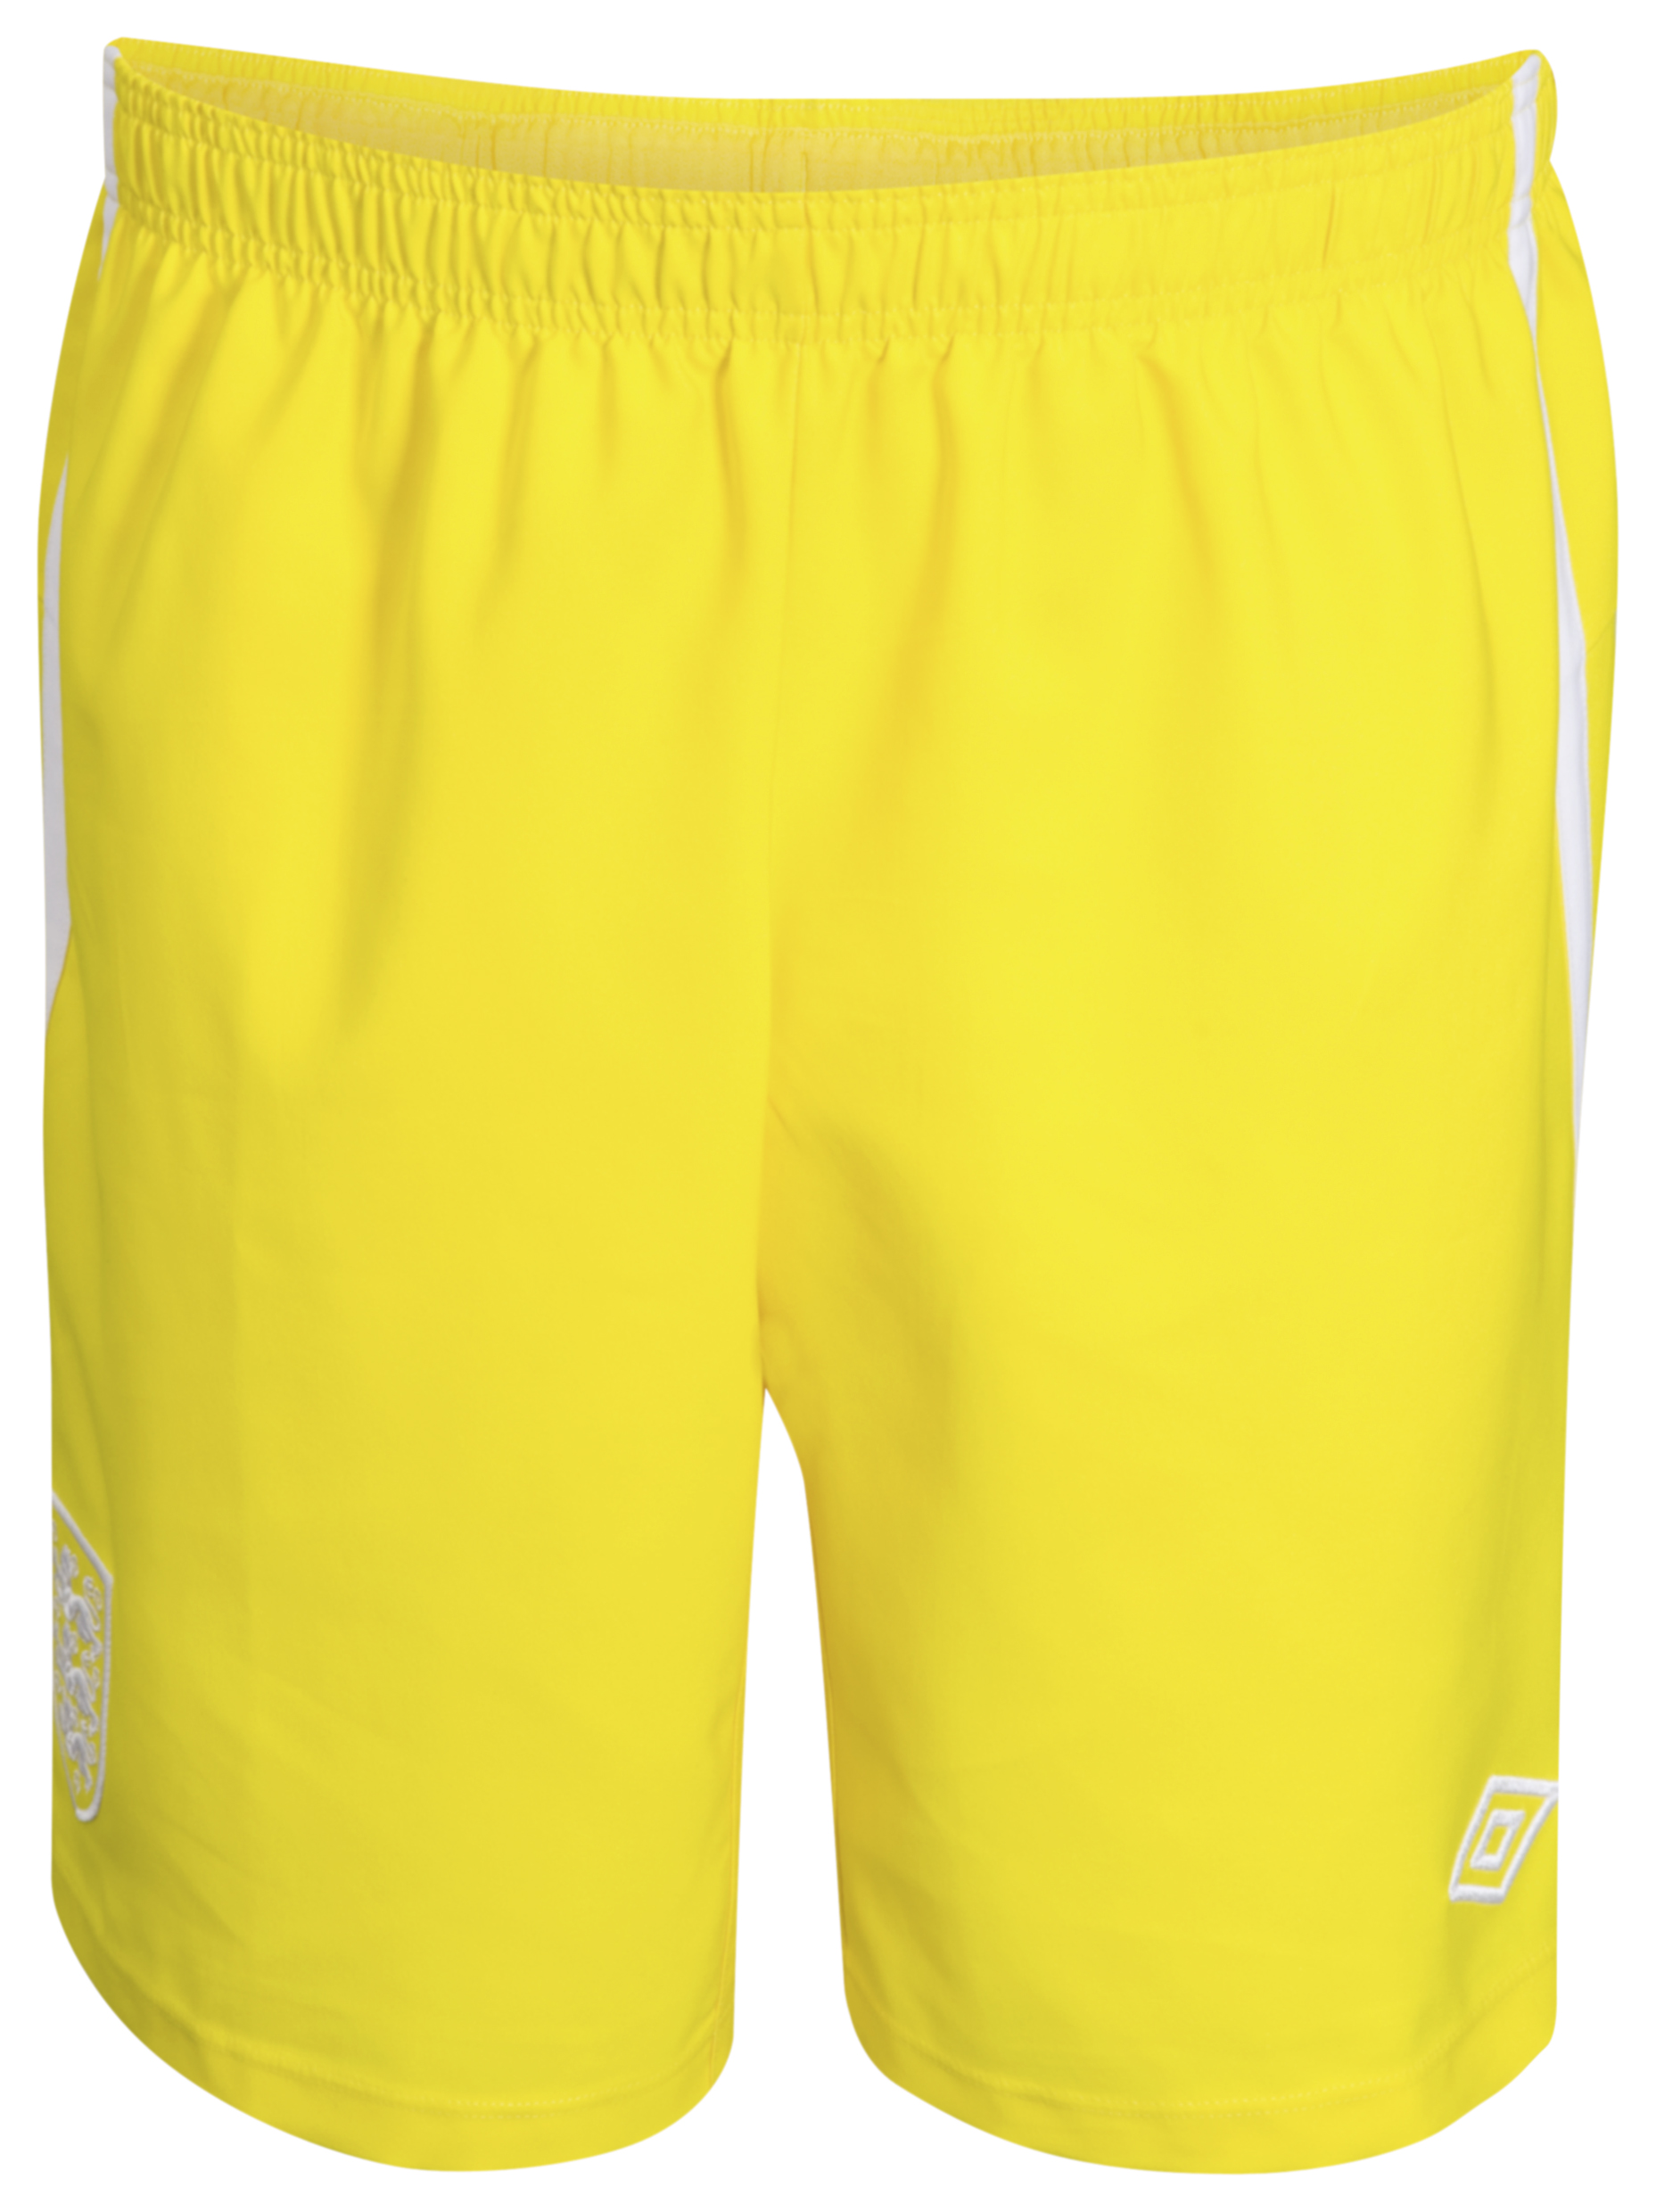 England Away Goalkeeper Shorts 2010 - Kids